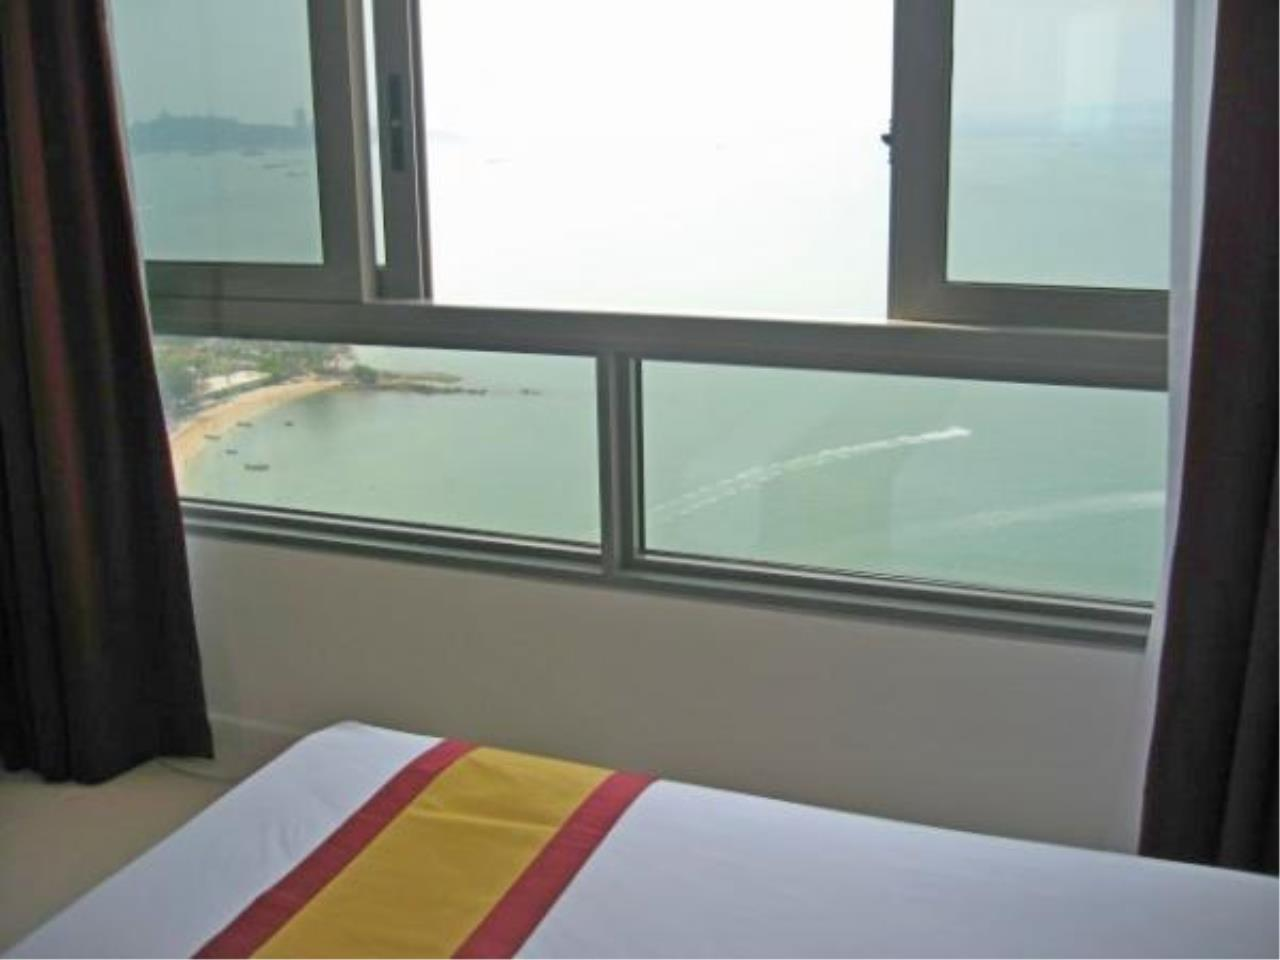 RE/MAX Town & Country Property Agency's Beach front condo for rent in Wong Amat! 1